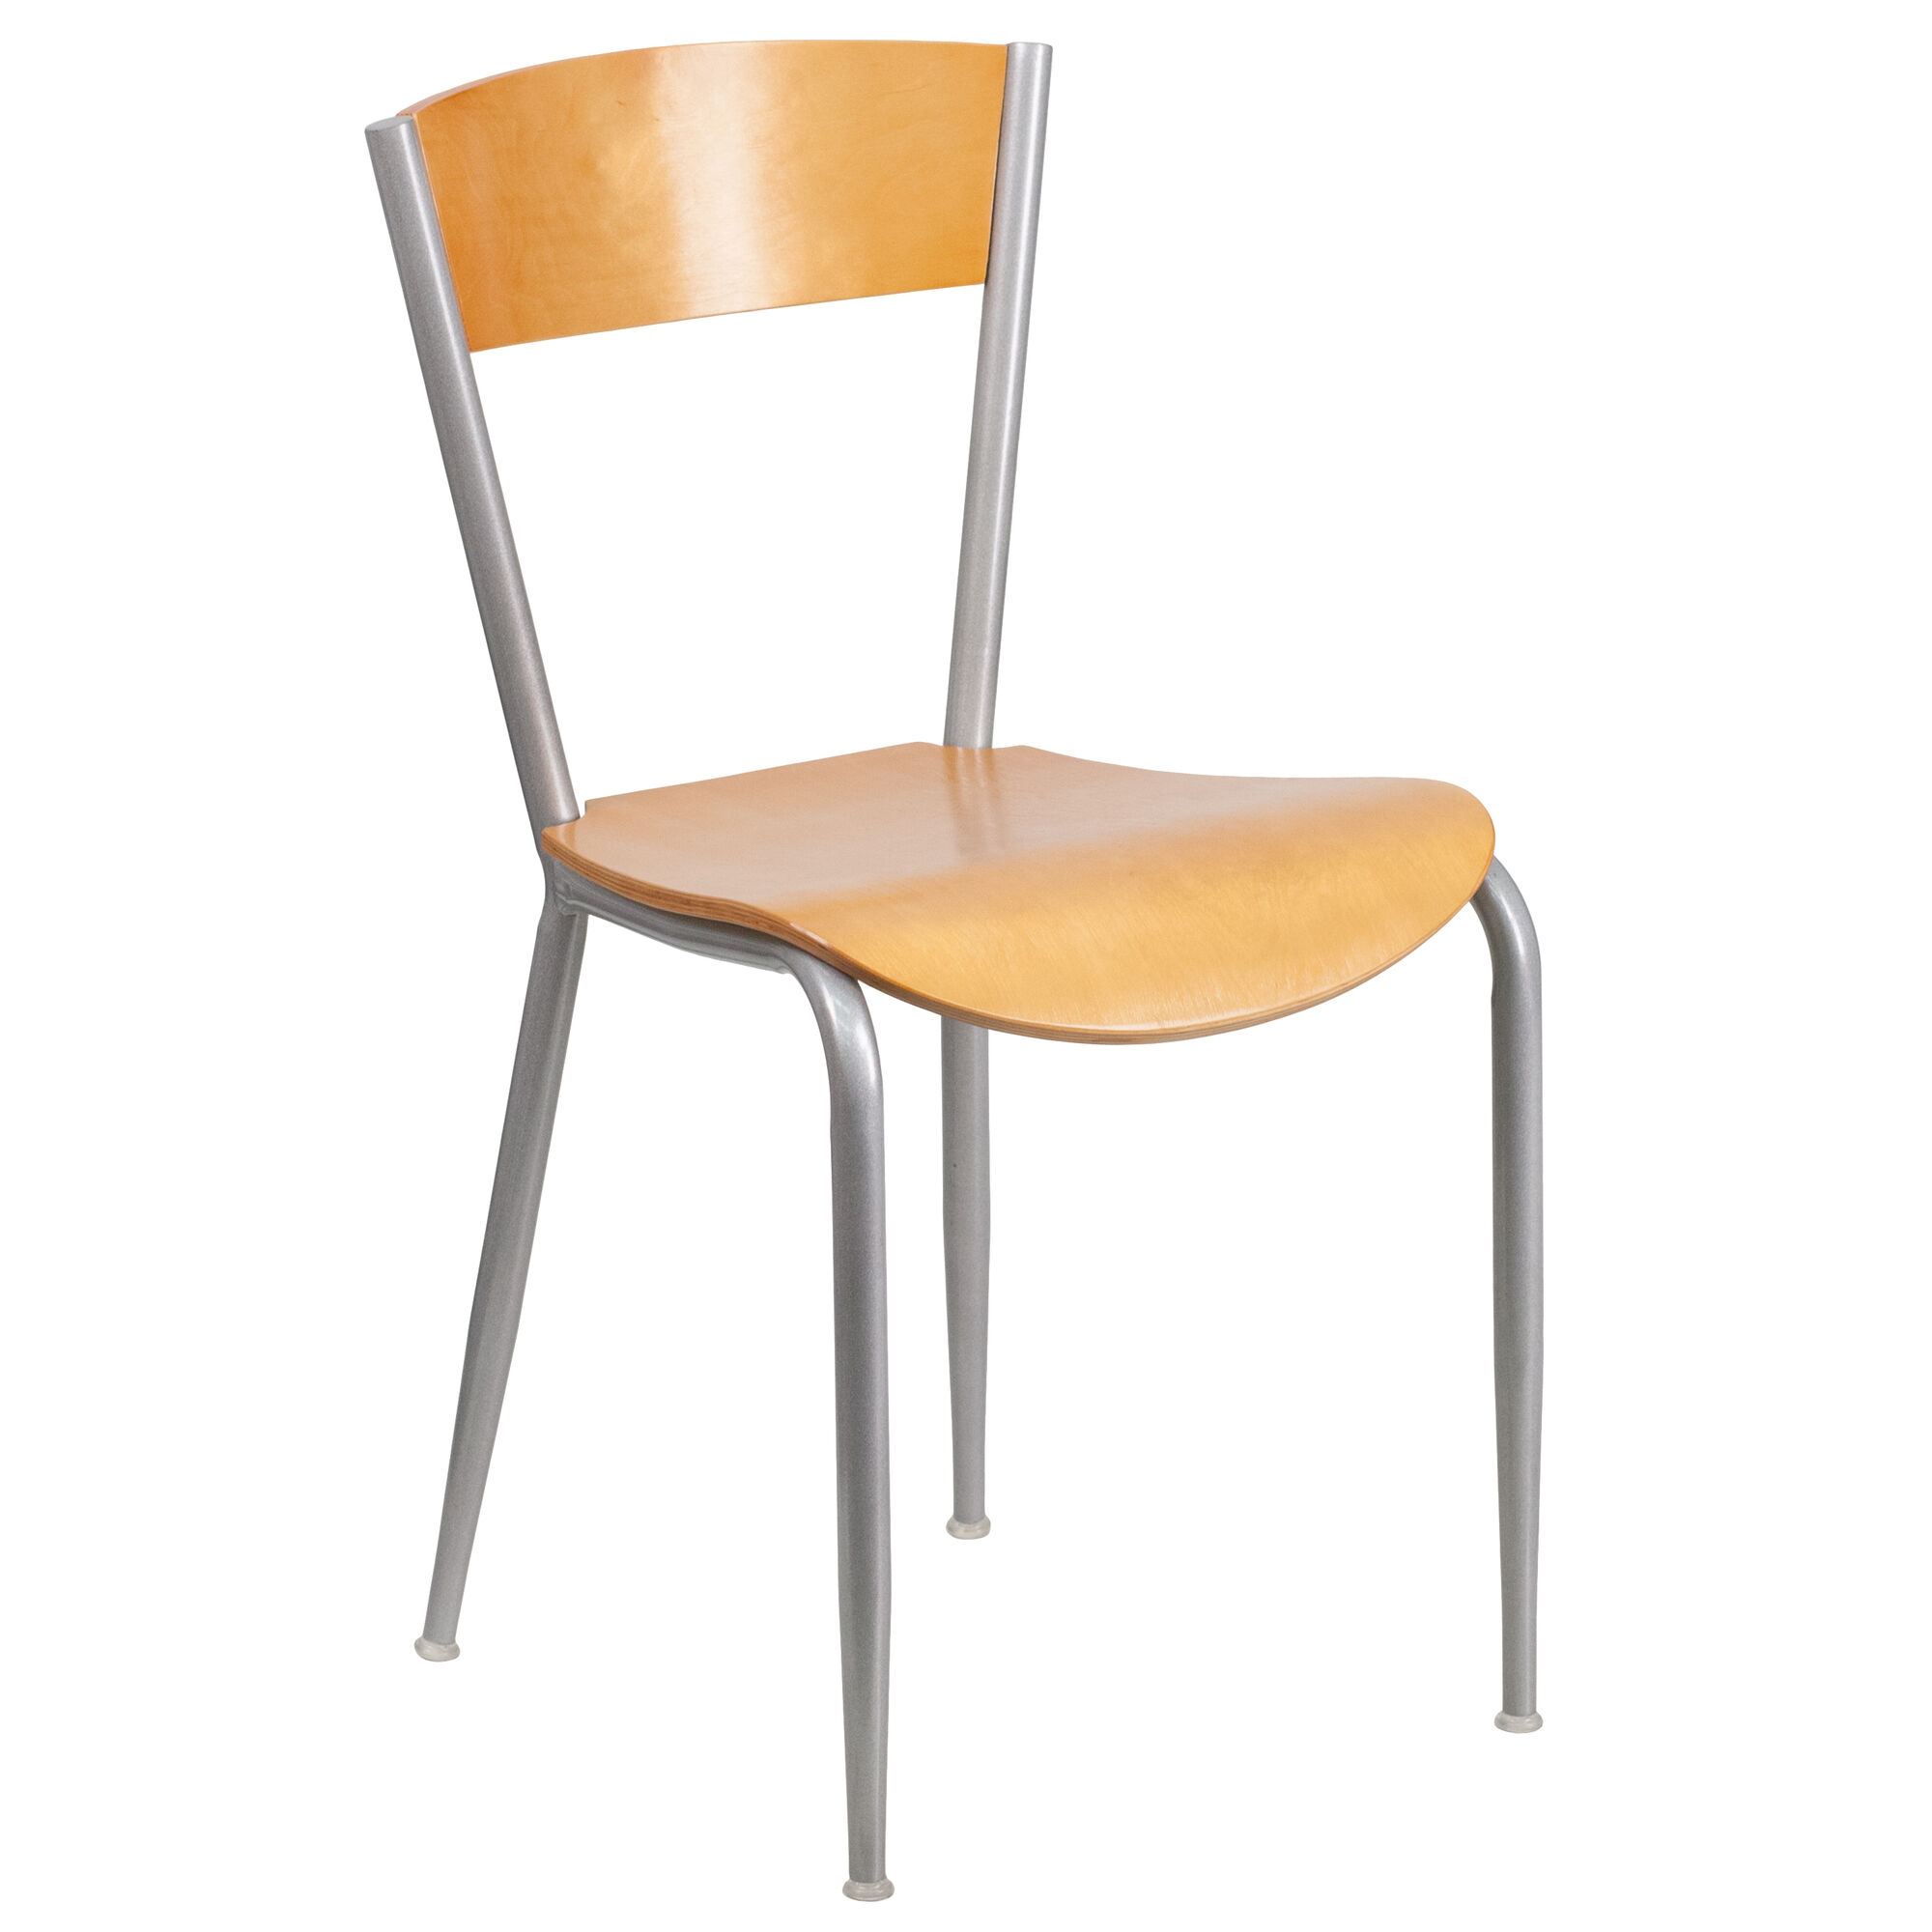 Silver open chair nat seat bfdh tdr